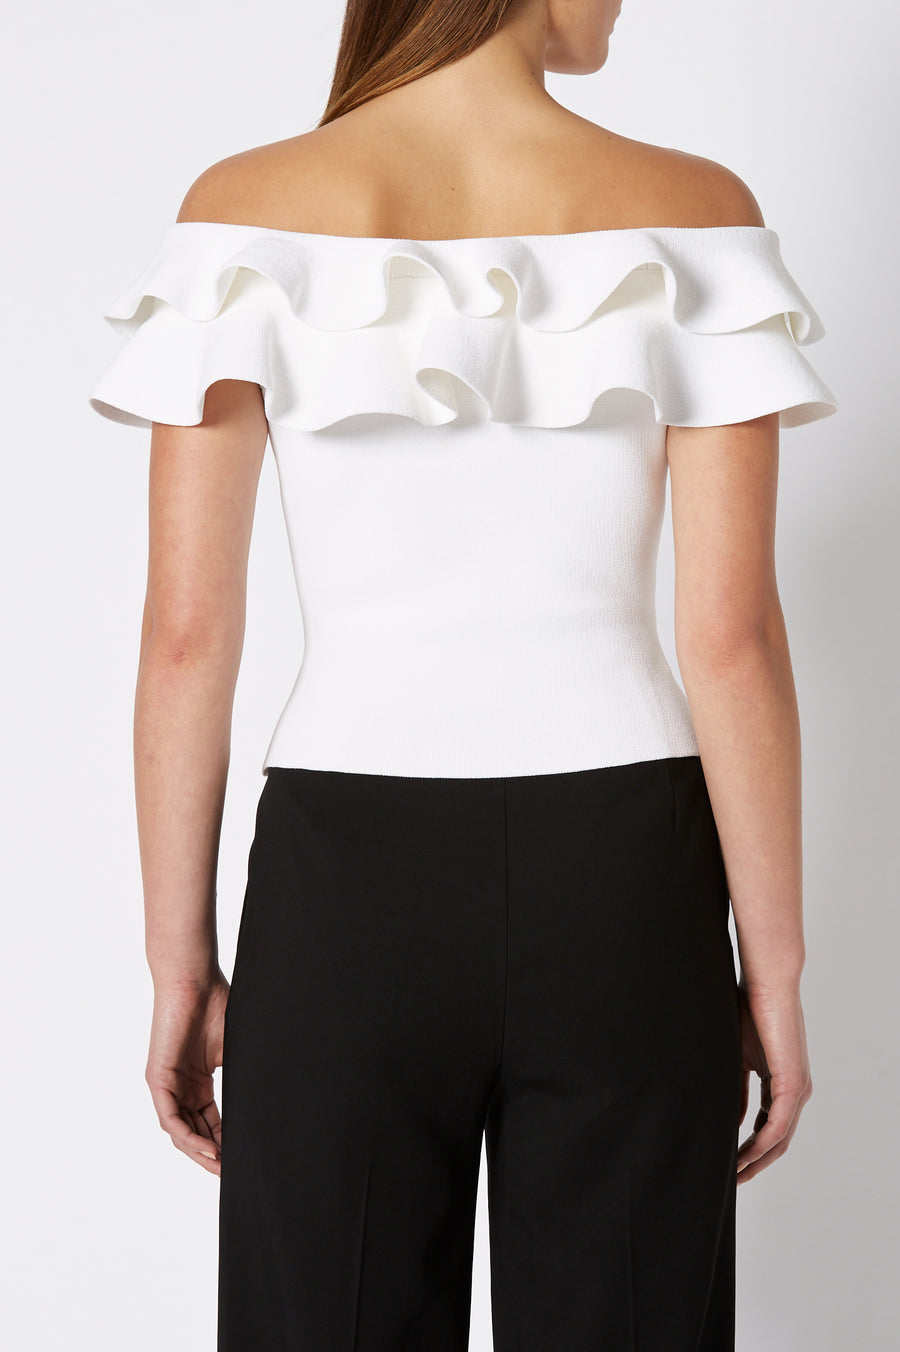 The Crepe Knit Cold Shoulder Ruffle Top is designed for a slim fit, color white